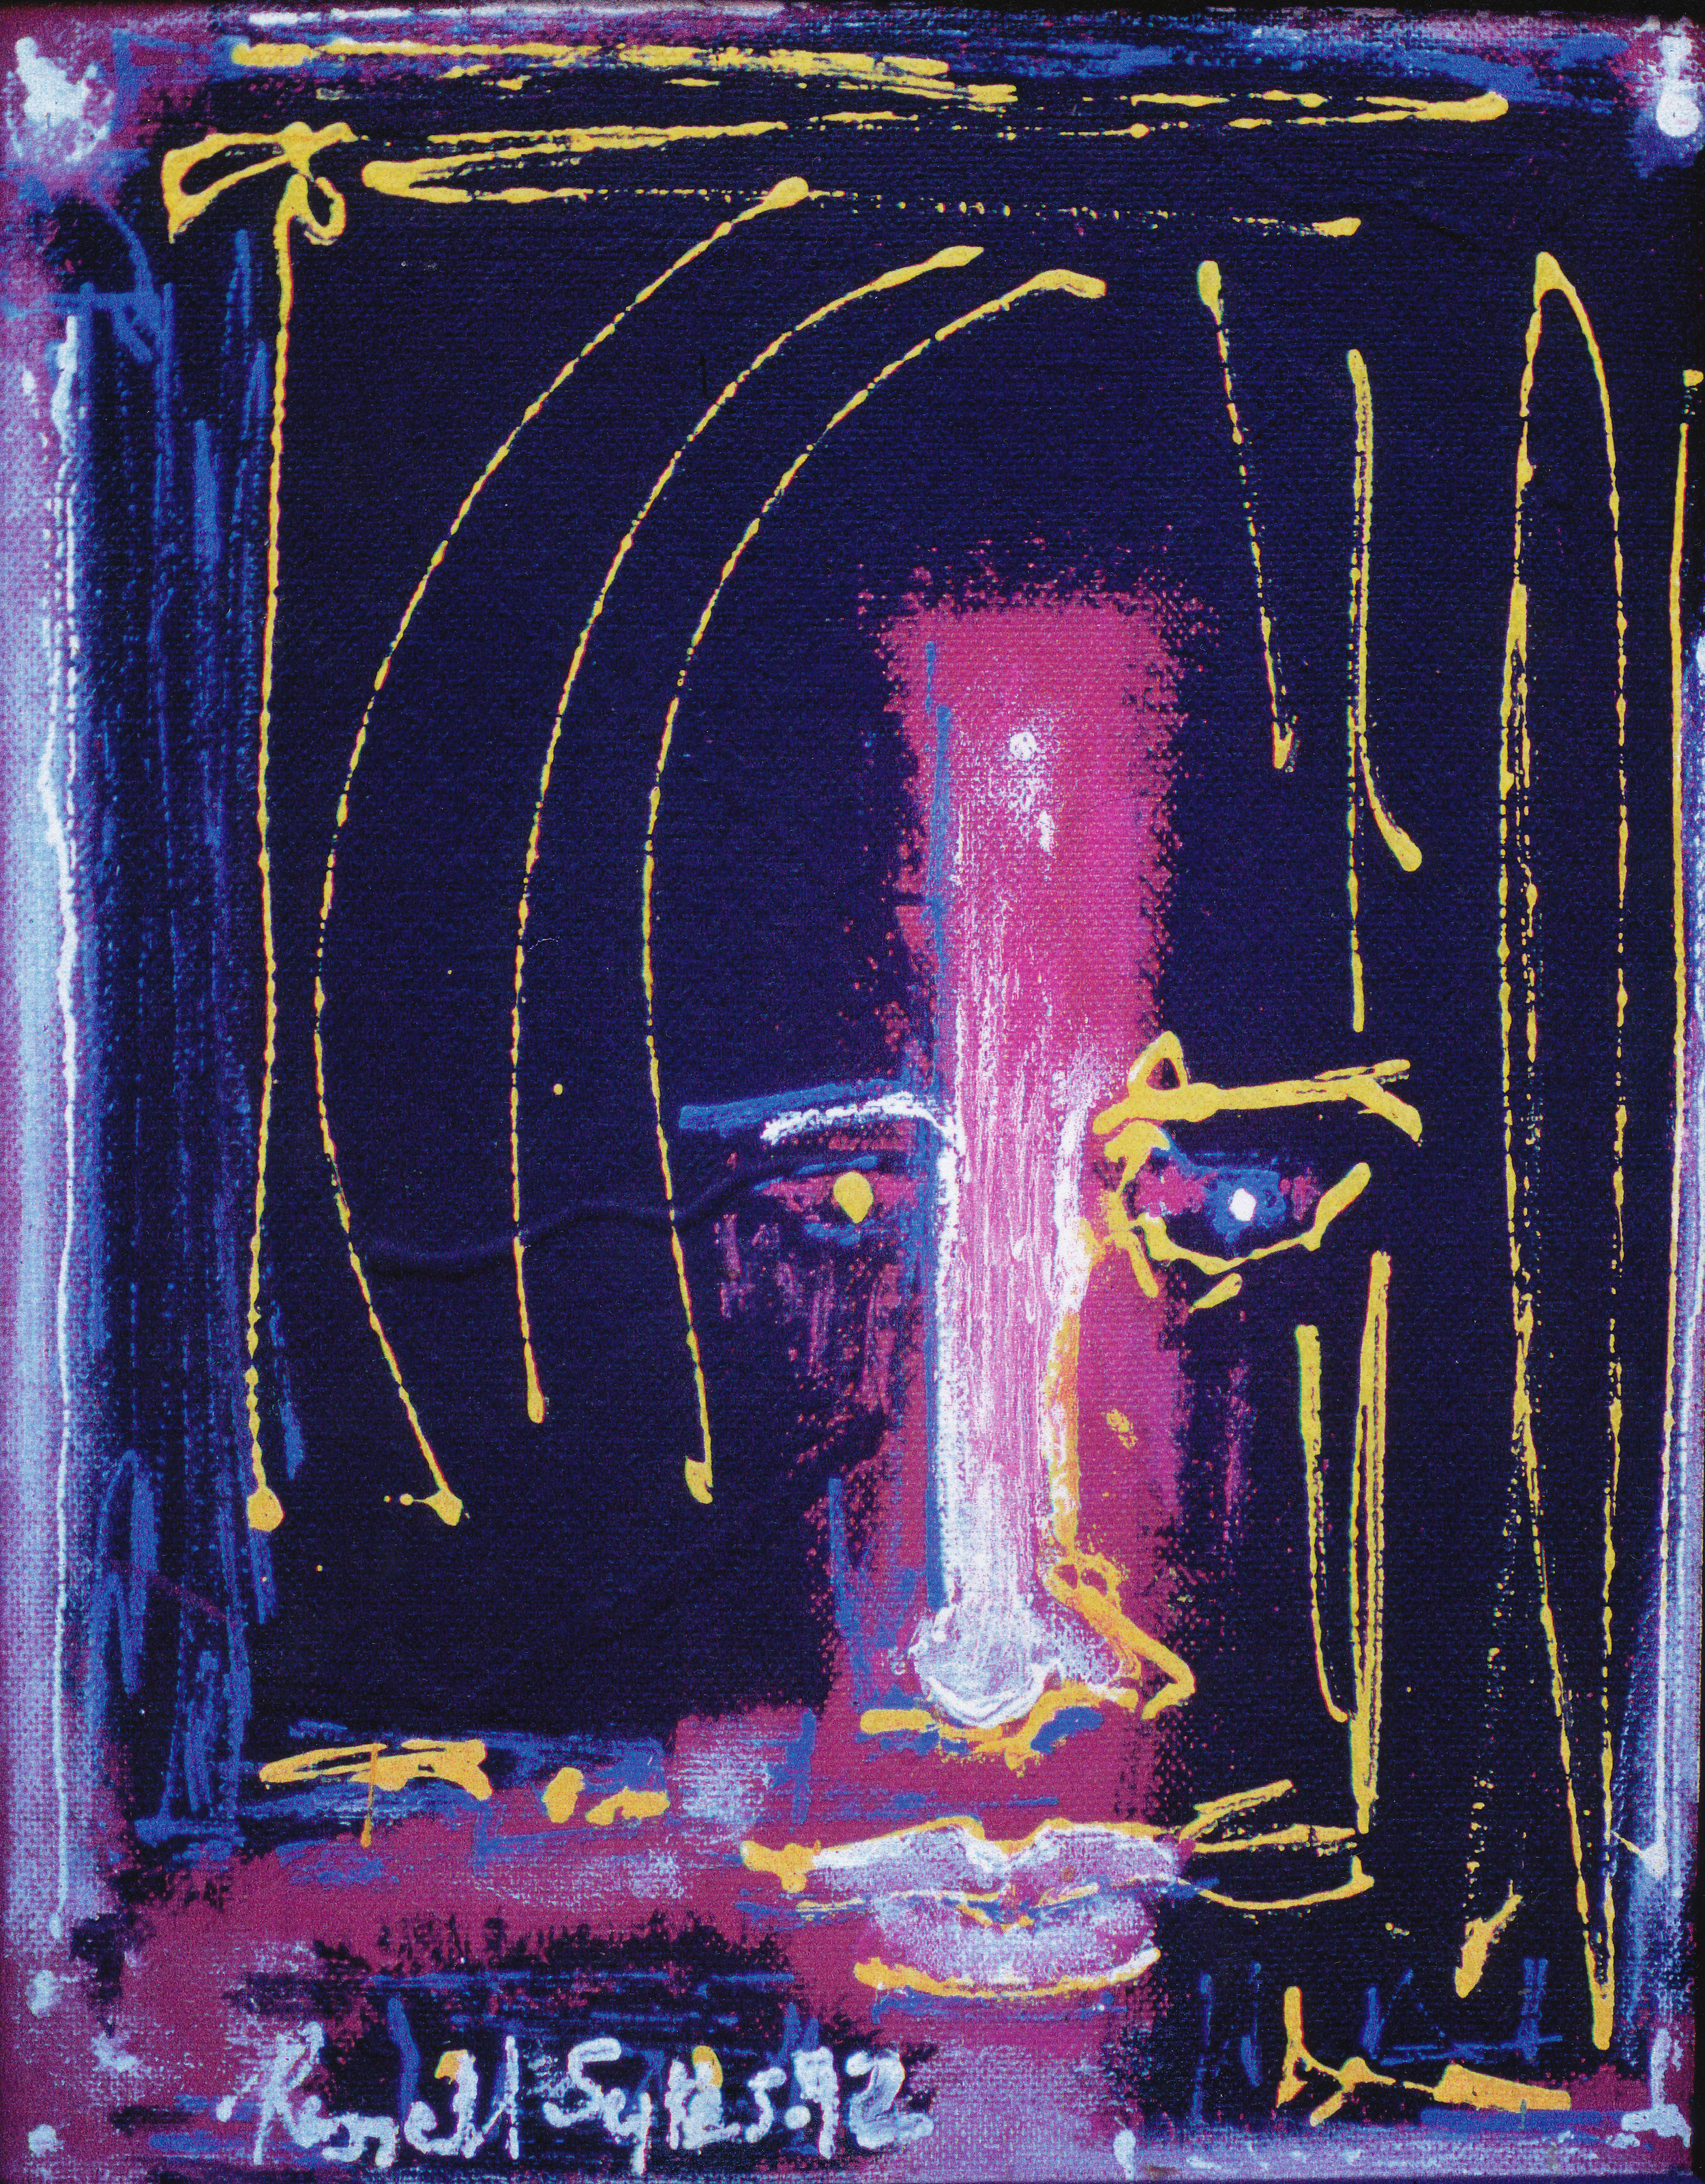 Untitled, Man with Dreads, 1992